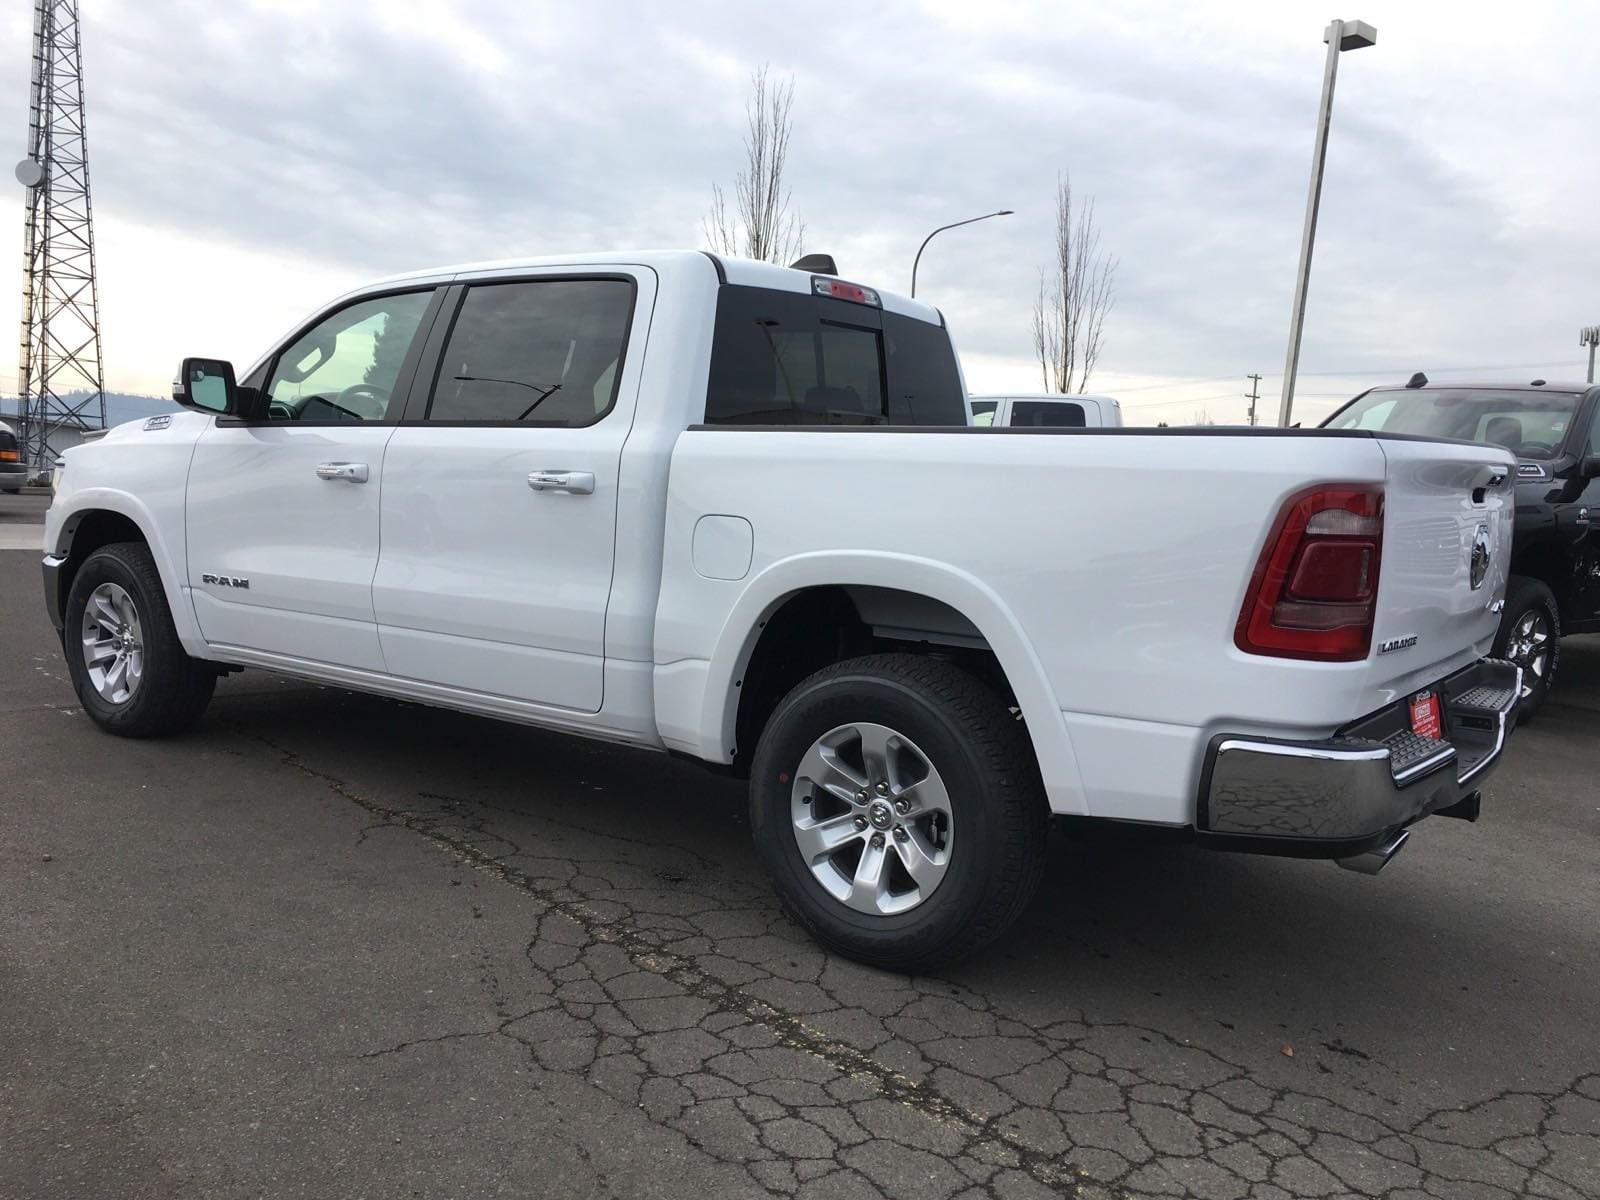 2020 Ram 1500 Crew Cab 4x4, Pickup #R1946 - photo 1